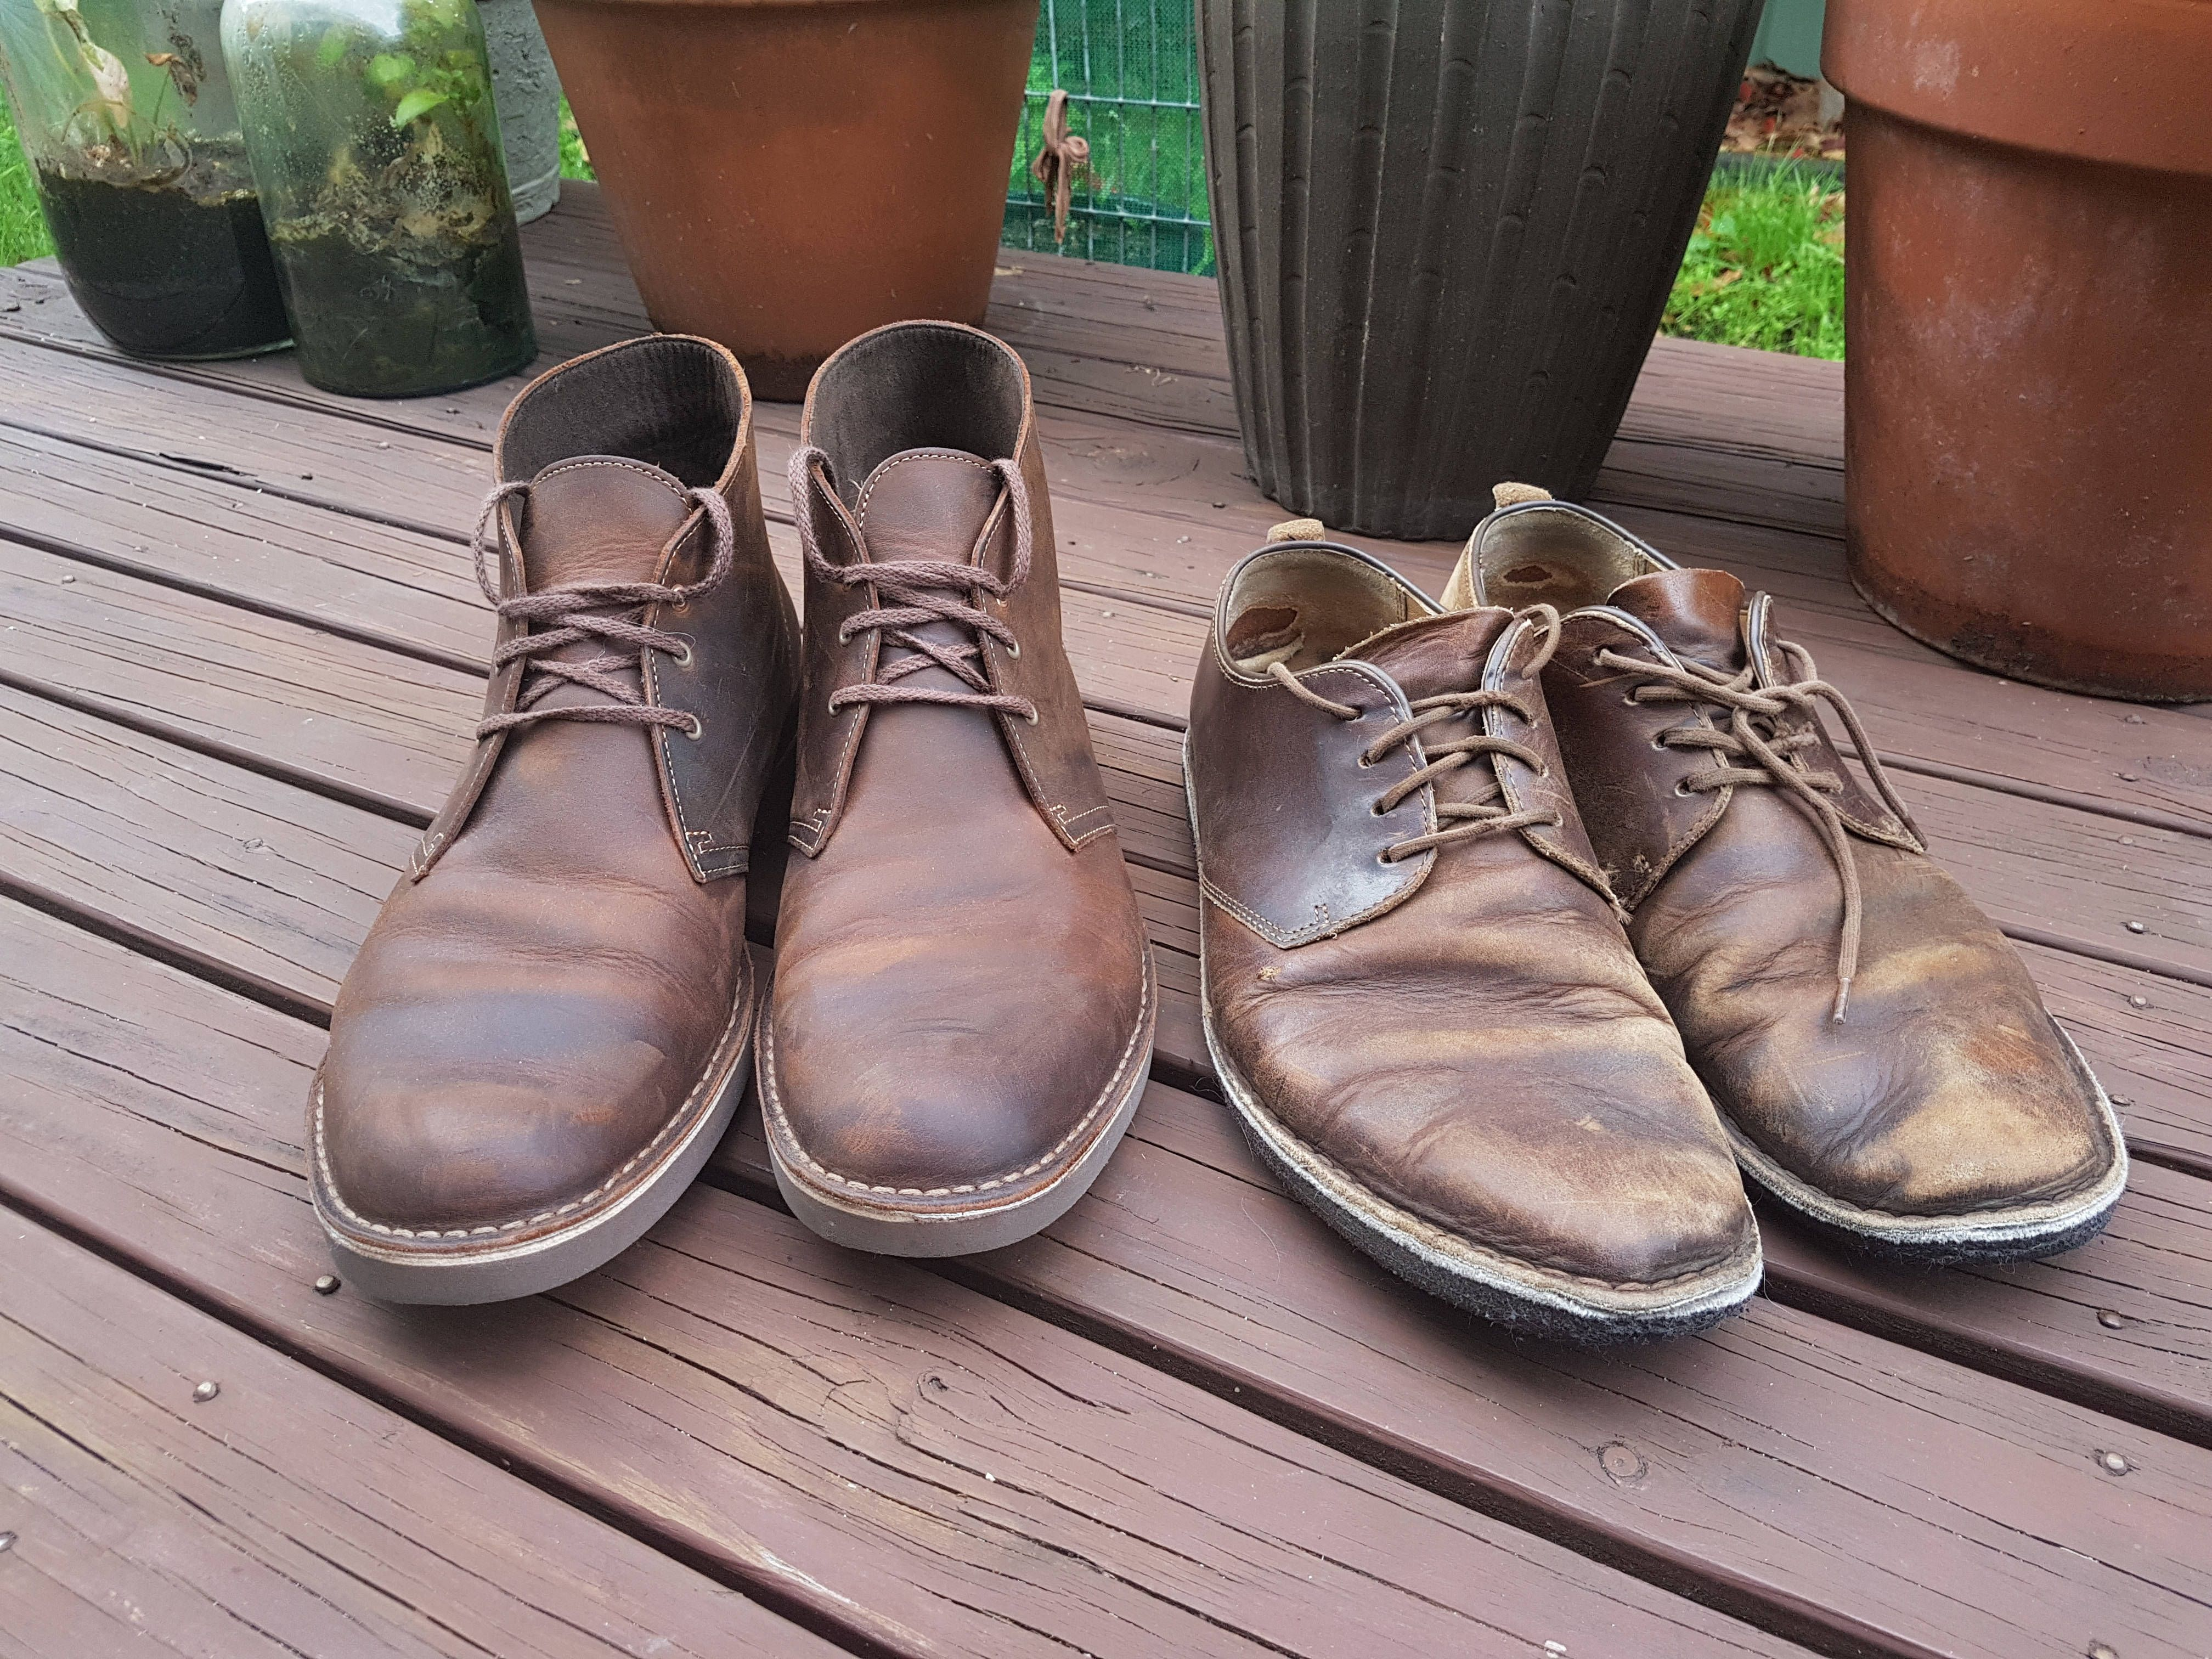 a125a01db0a4 Clark s Dessert Boots  Two Years Of Daily Wear vs New Pair  styled247